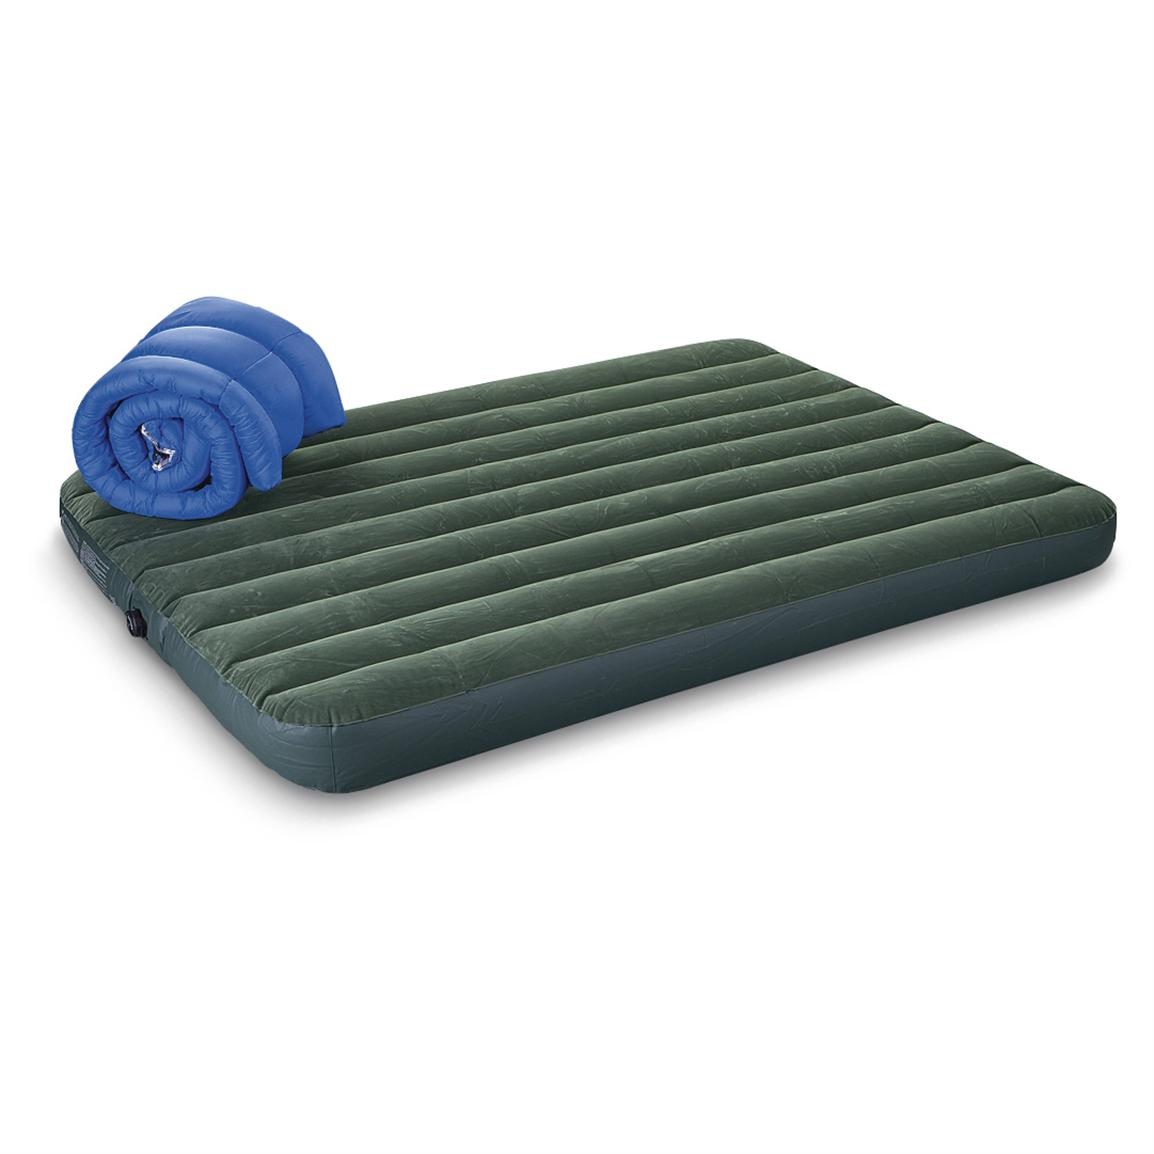 Intex Camp Air Bed with Pump - Reviews of Enjoy your Summer Camping Trips with these Top 20+ Camping and Hiking Supplies